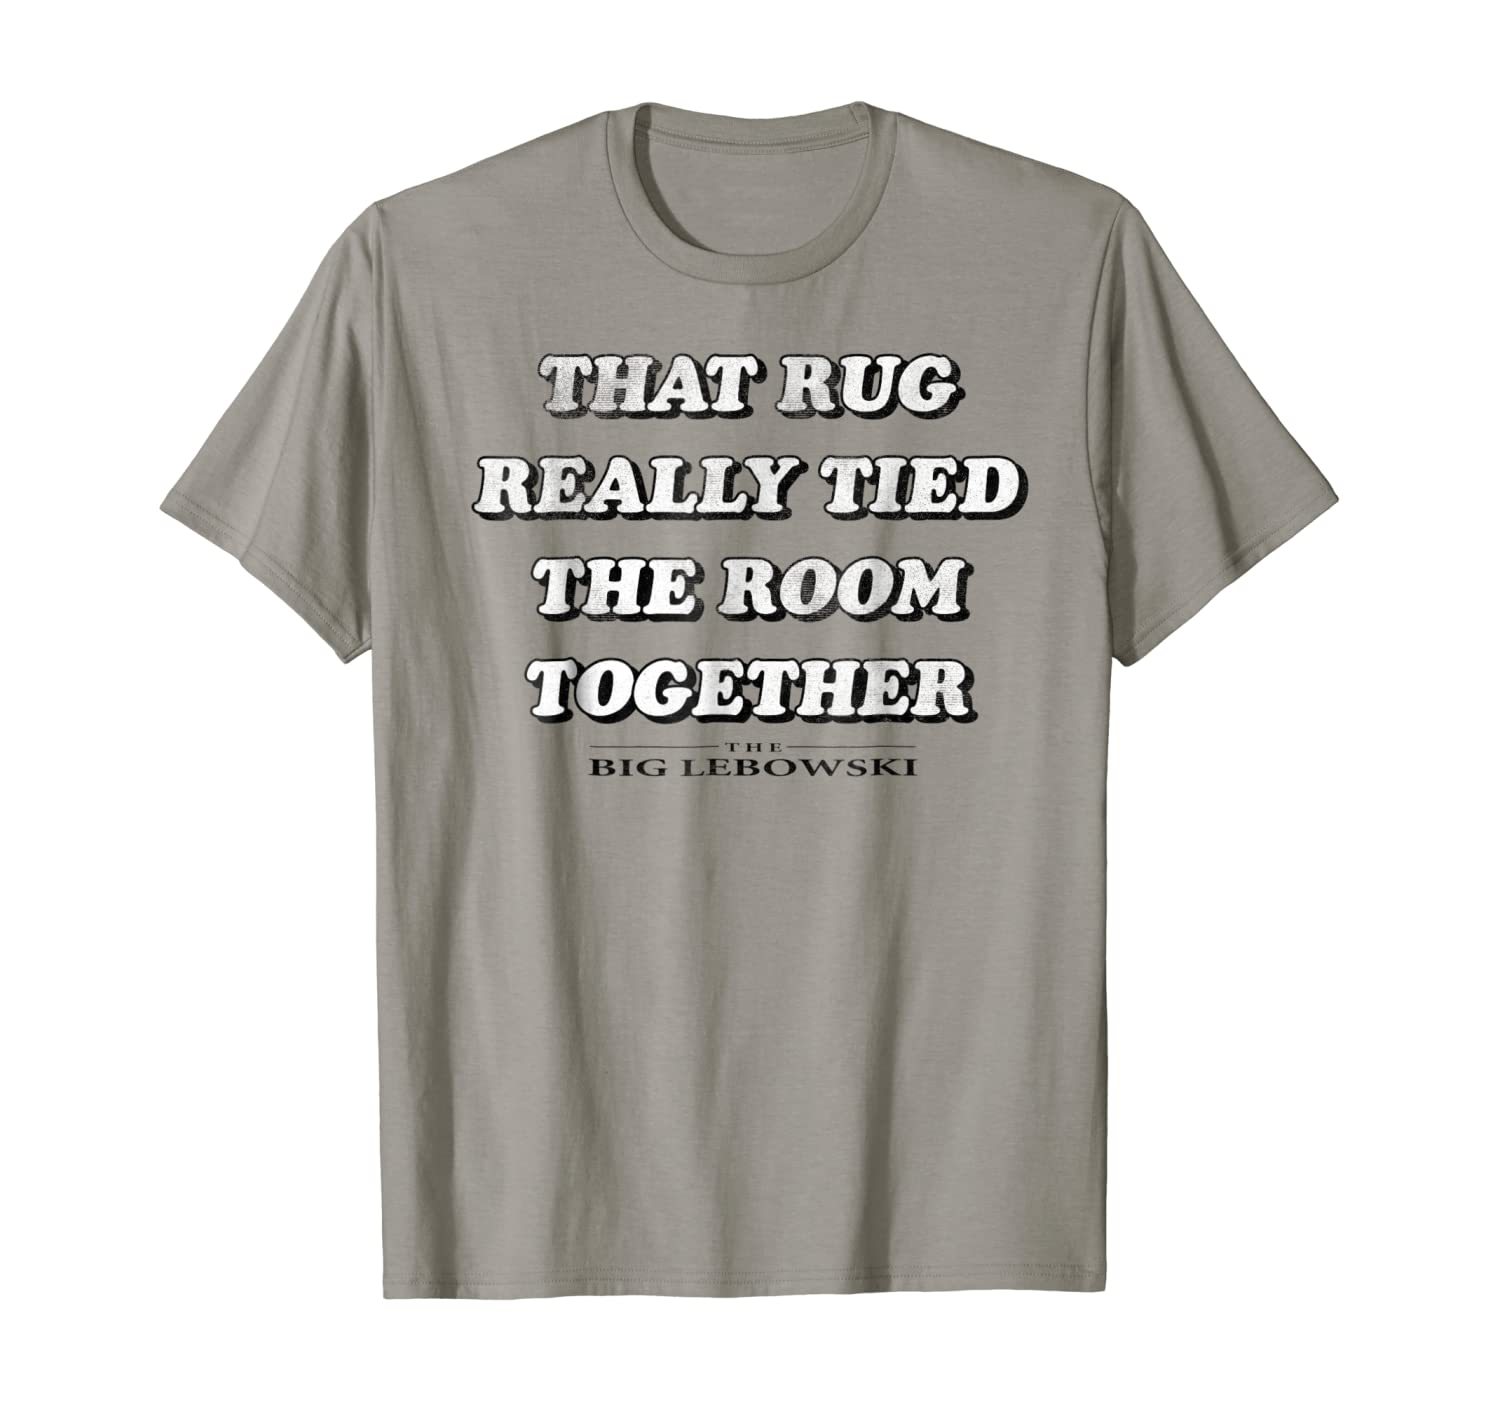 Big Lebowski Really Tied The Room Together Graphic T-Shirt